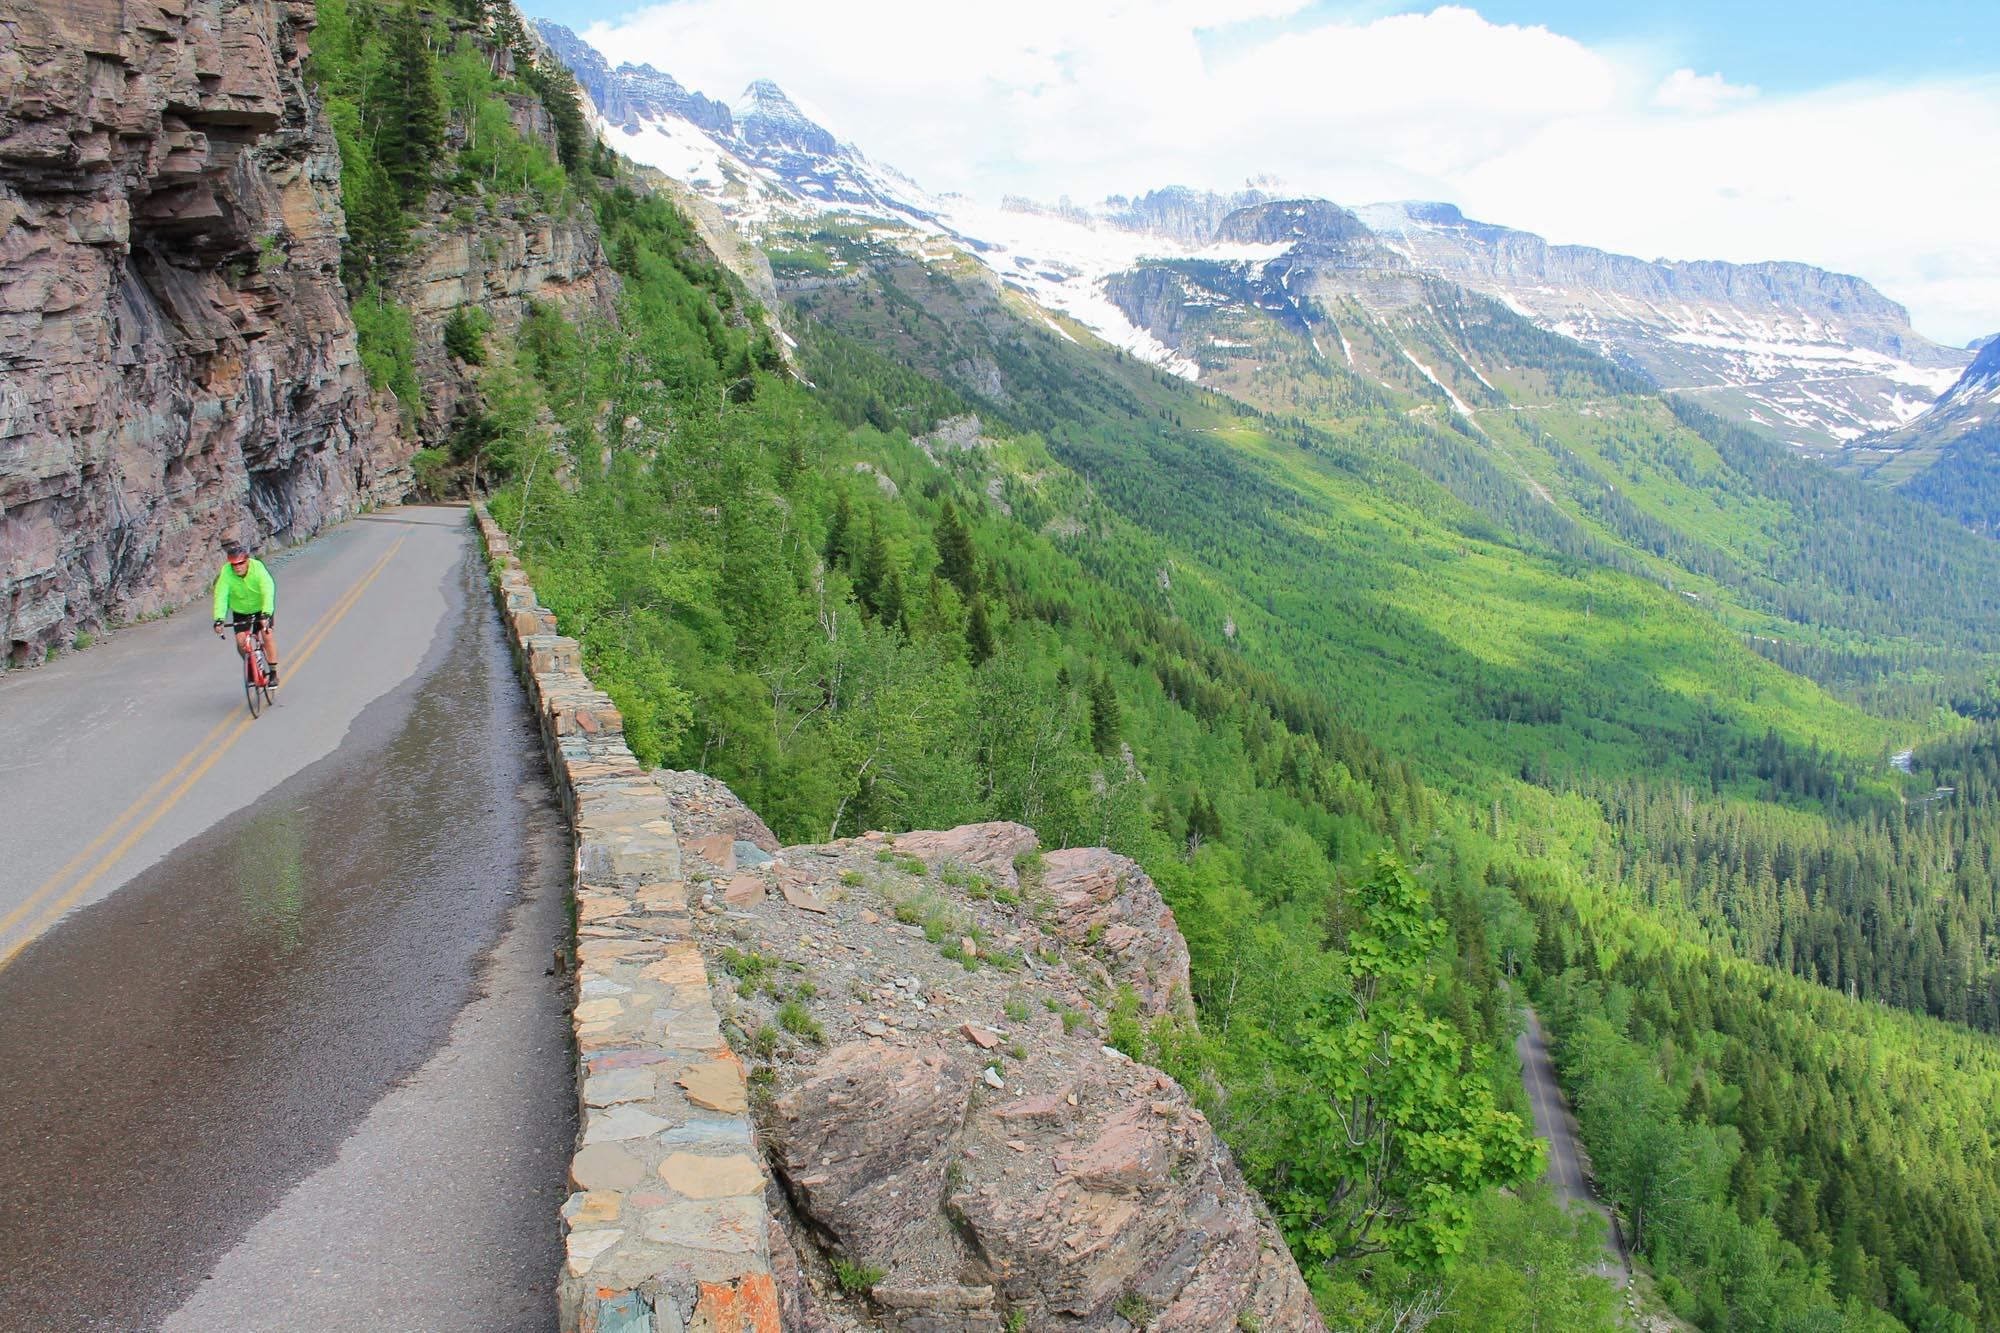 Going-to-the-Sun Road is truly an engineering marvel